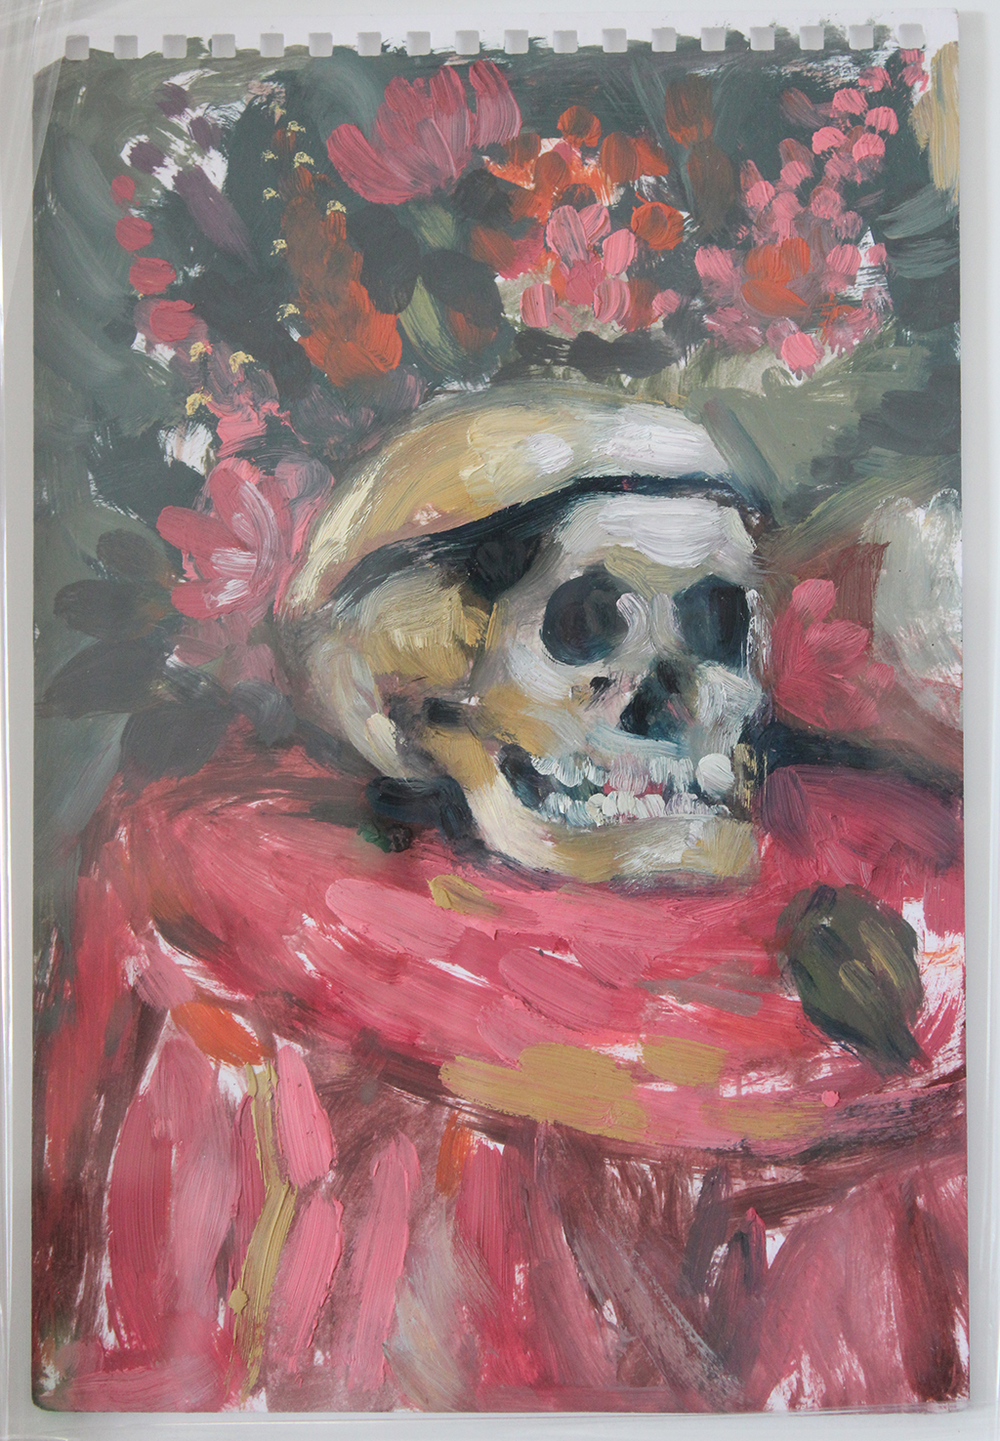 Alice Toich  Vanitas Study  Oil on paper  23.5 x 13.5 cm